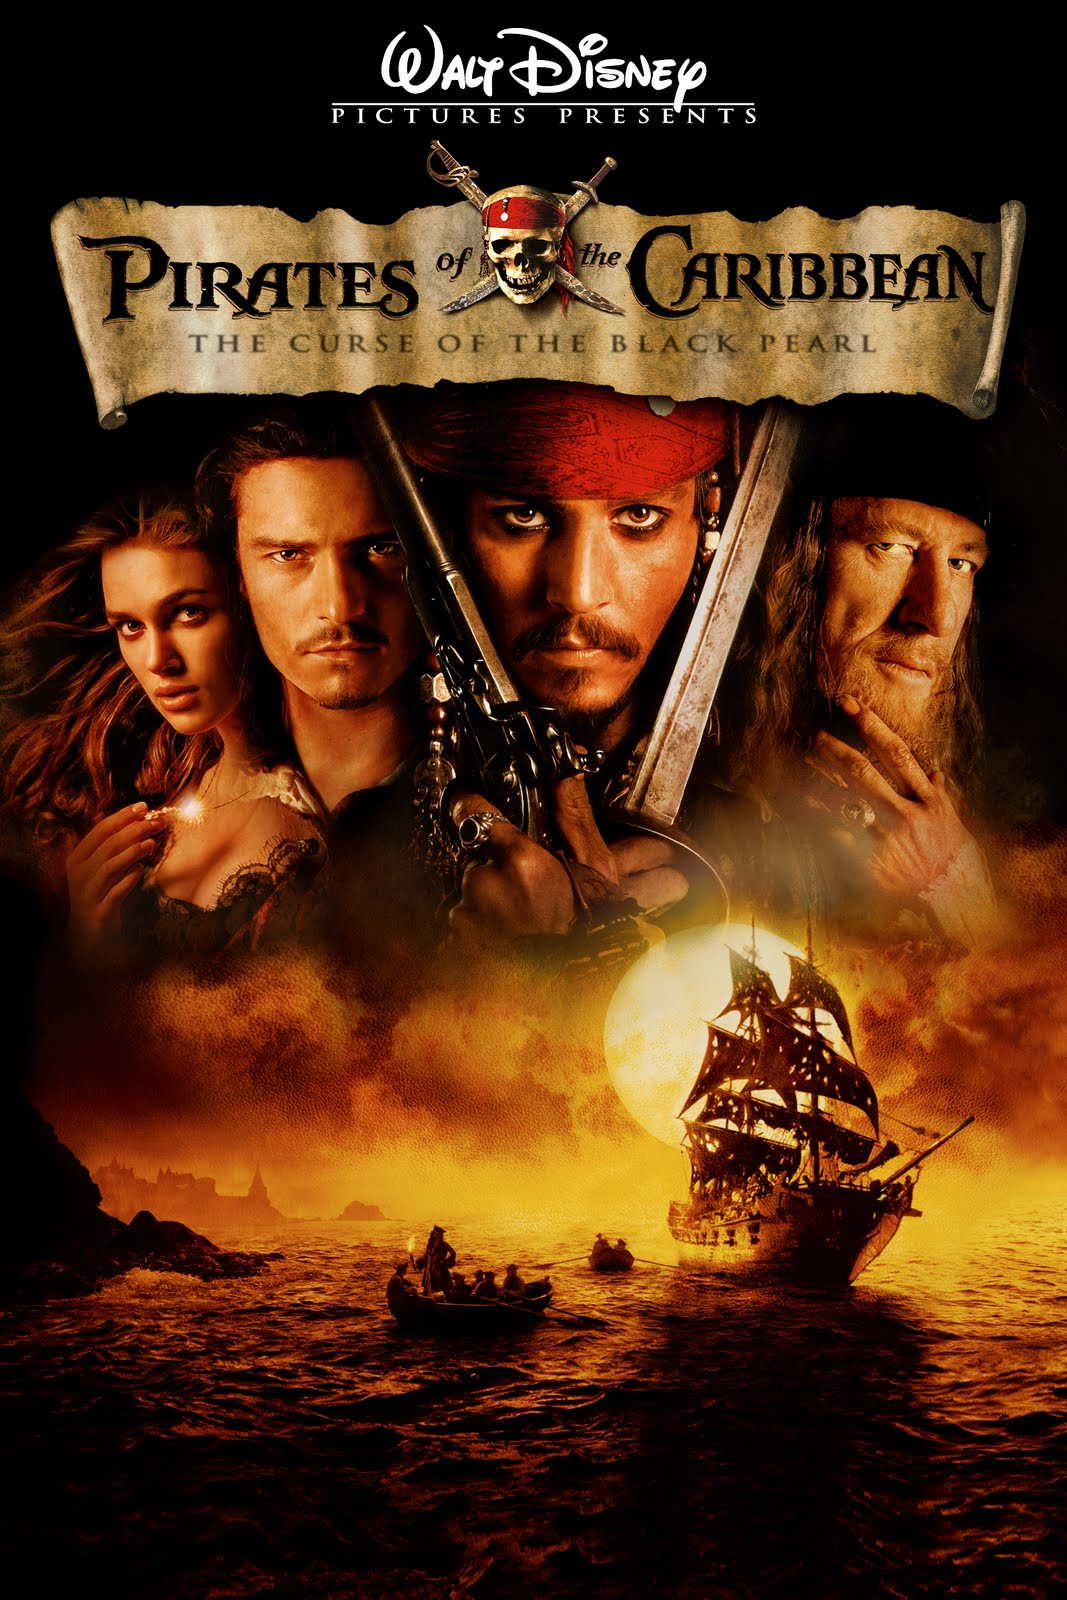 The Pirate Filme 1000 43 Images About Movie Time Pass The Popcorn Please